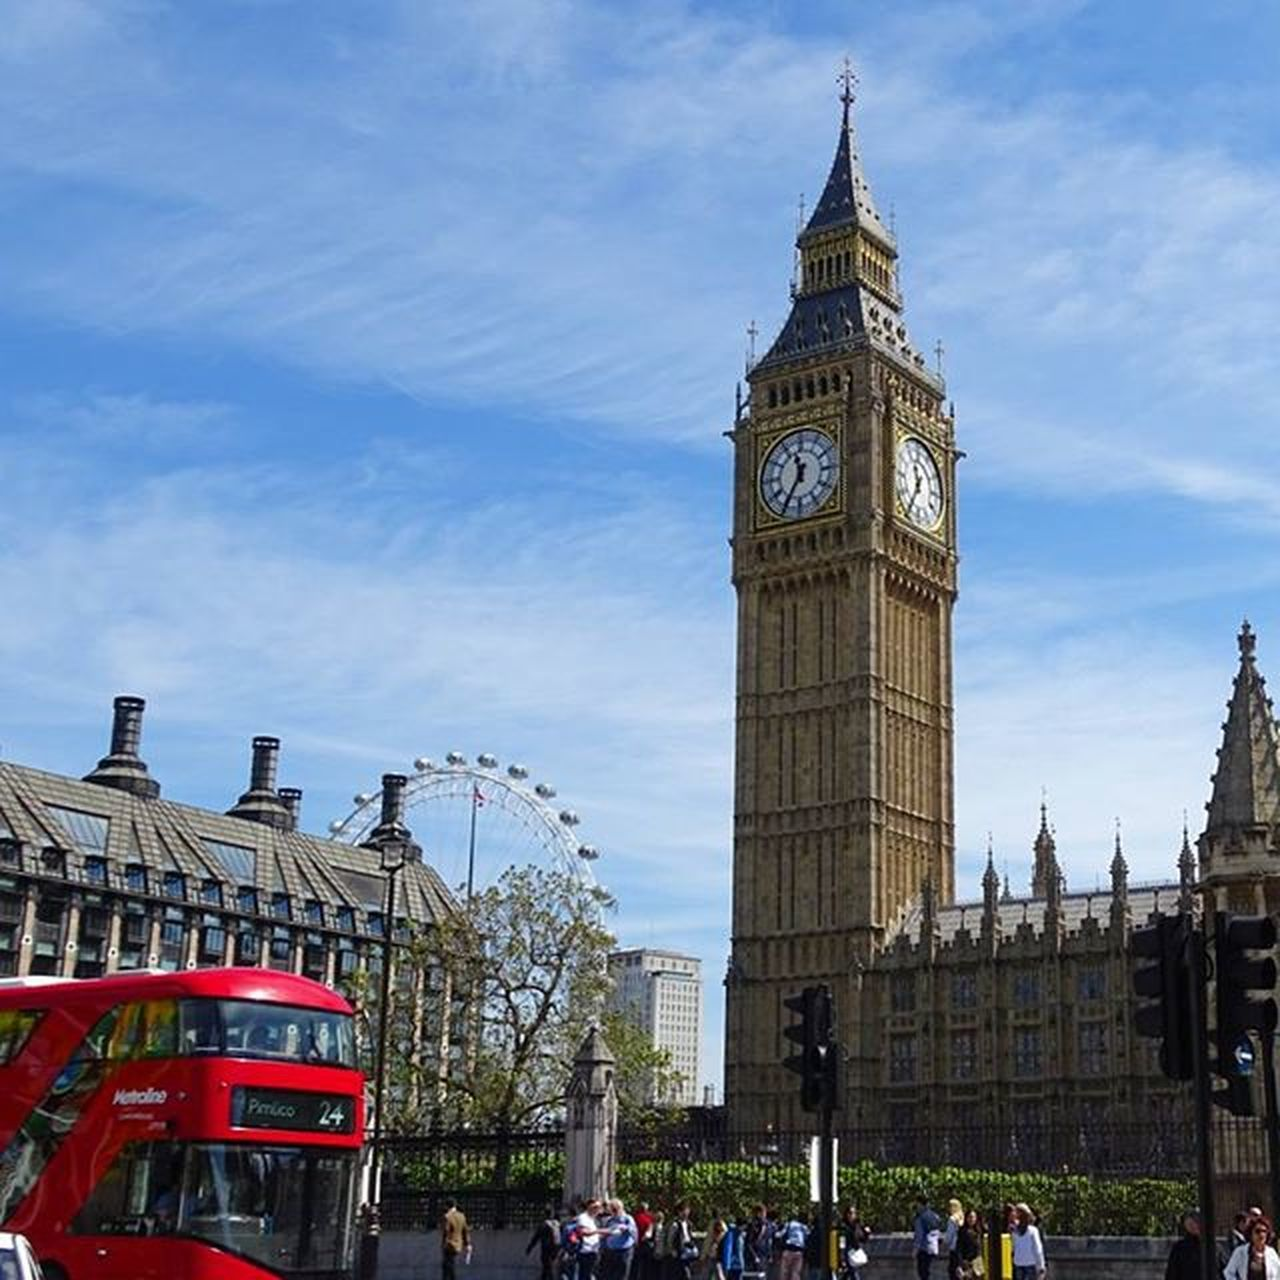 Loves_world Shotaward England Inghilterra Unitedkingdom Bigben Britain Redbus Sony London LondonEye Discoverworld Clouds Vivo_europe Londra Travel Instatravel Amazing_places_to_visit Weekend Wonderfulplaces Picoftheday Photooftheday Globejetsetter Visitlondon Skylovers turnupthebrightness nosnatrip thisislondon